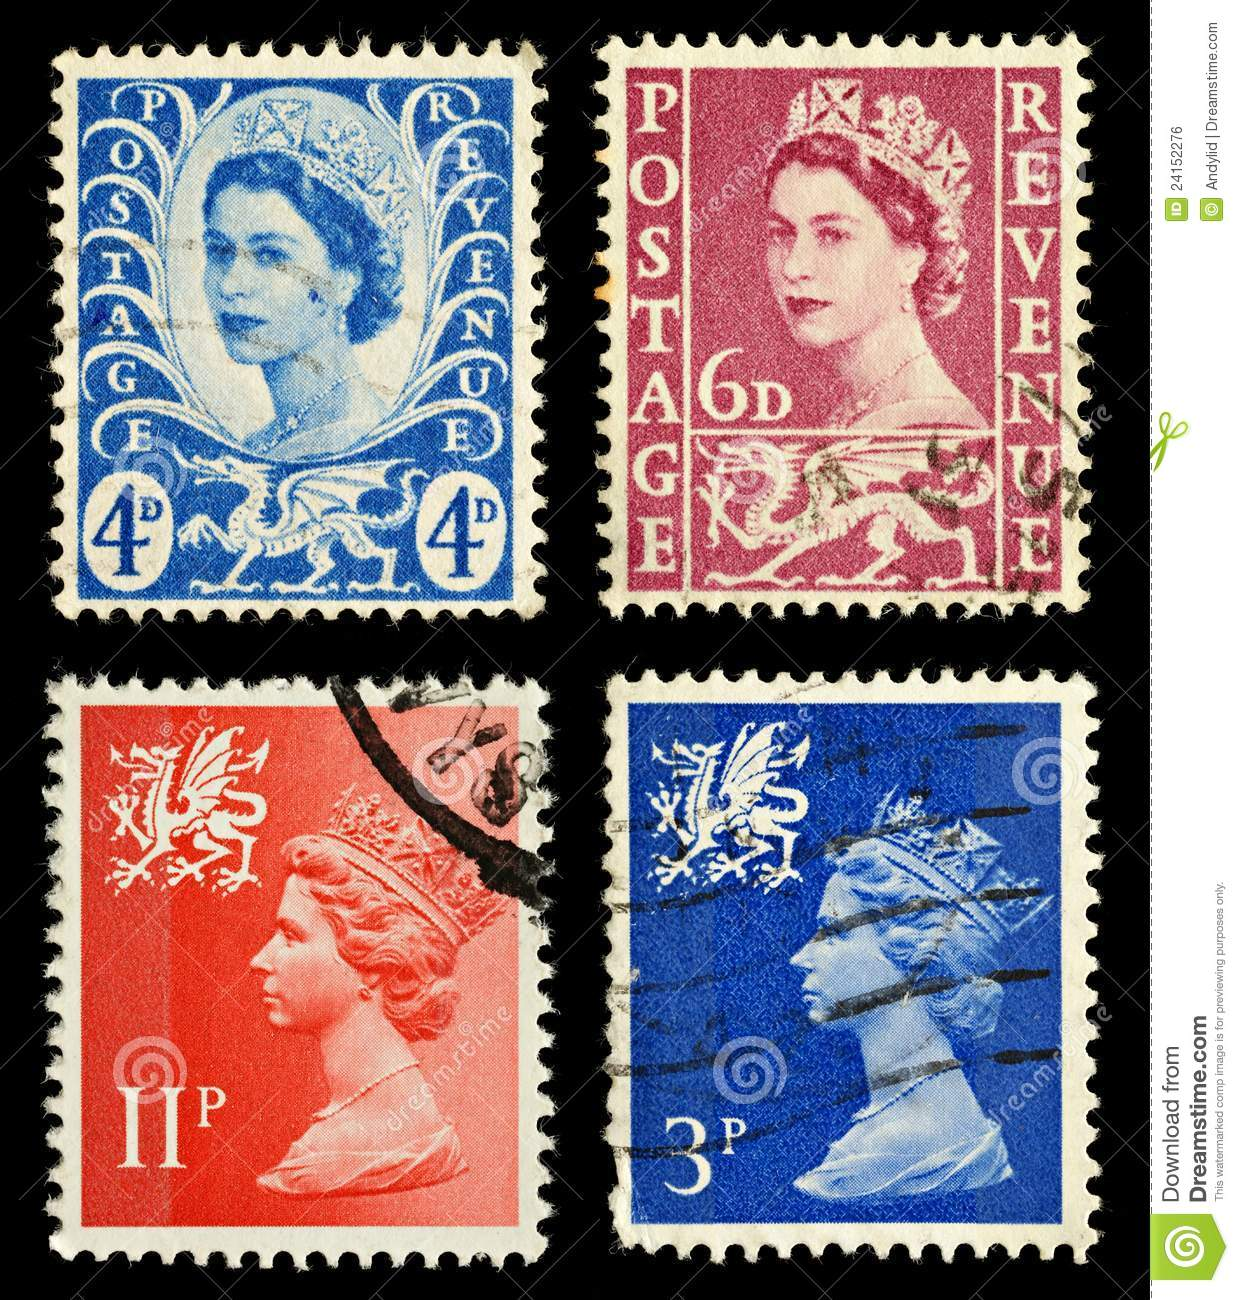 Wales Postage Stamps Royalty Free Stock Image Image